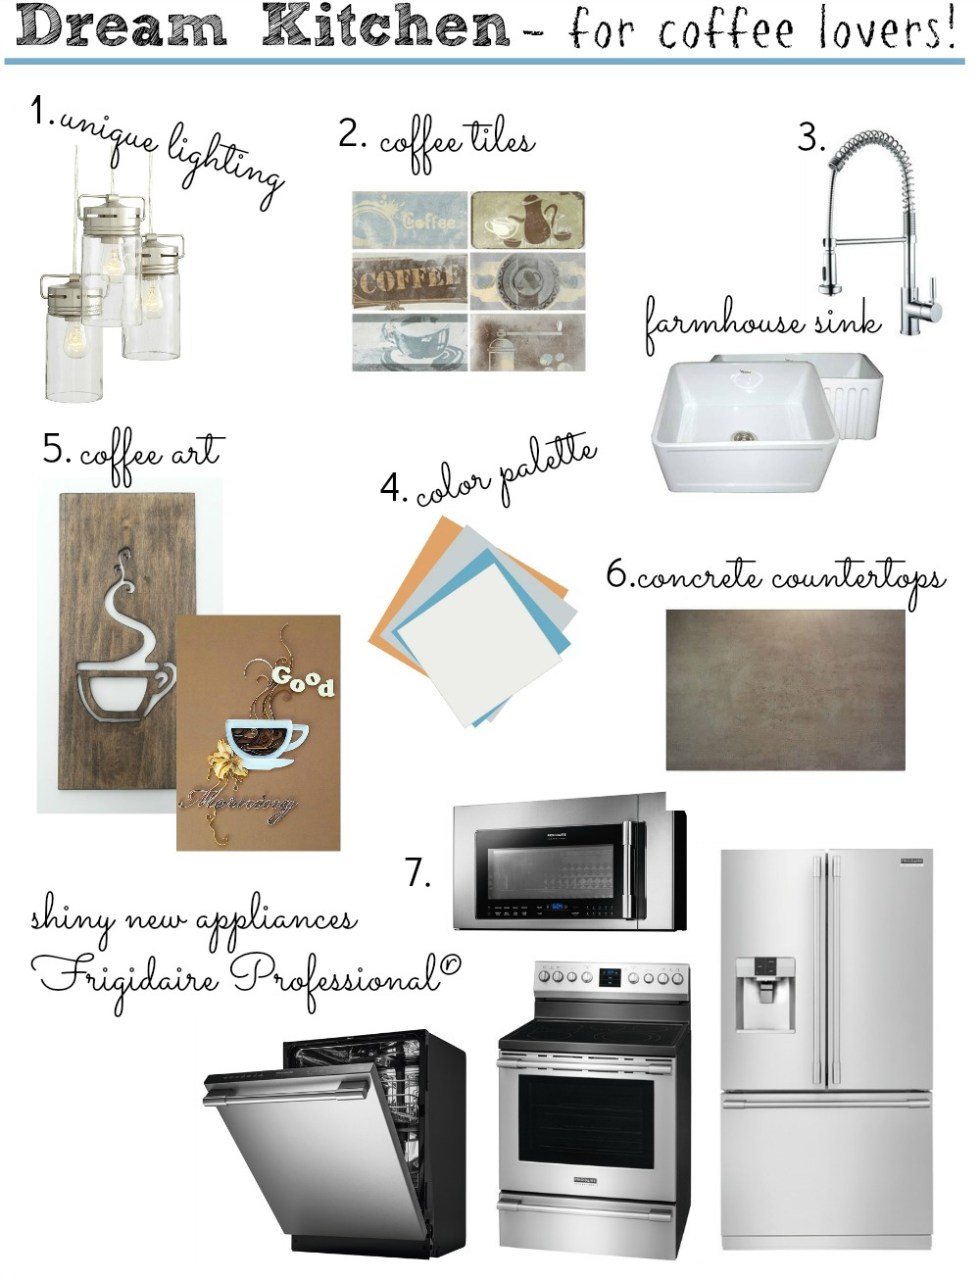 My Dream Kitchen Design with a updated rustic country kitchen style,  Frigidaire Professional® Appliances and the ultimate coffee station!